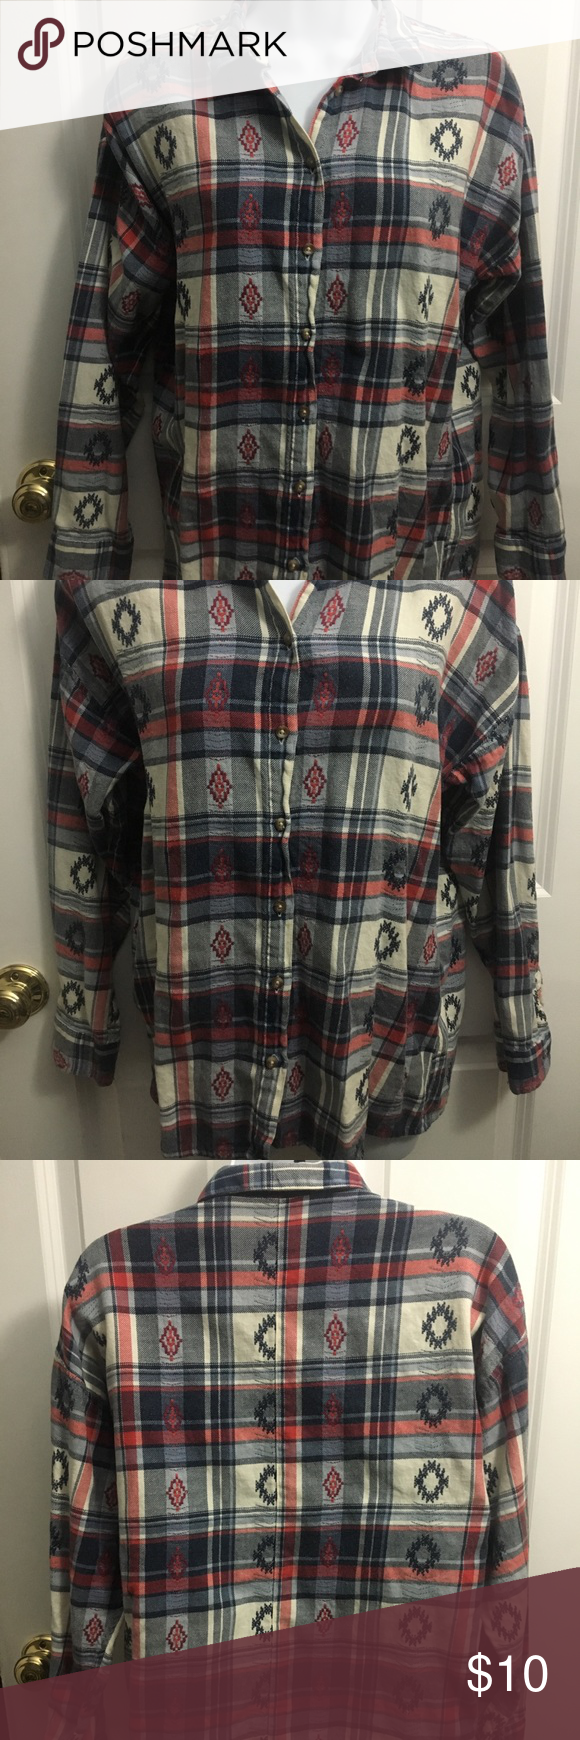 Flannel shirt knot  TOPSHOP flannel US size   Flannels Topshop and Ea